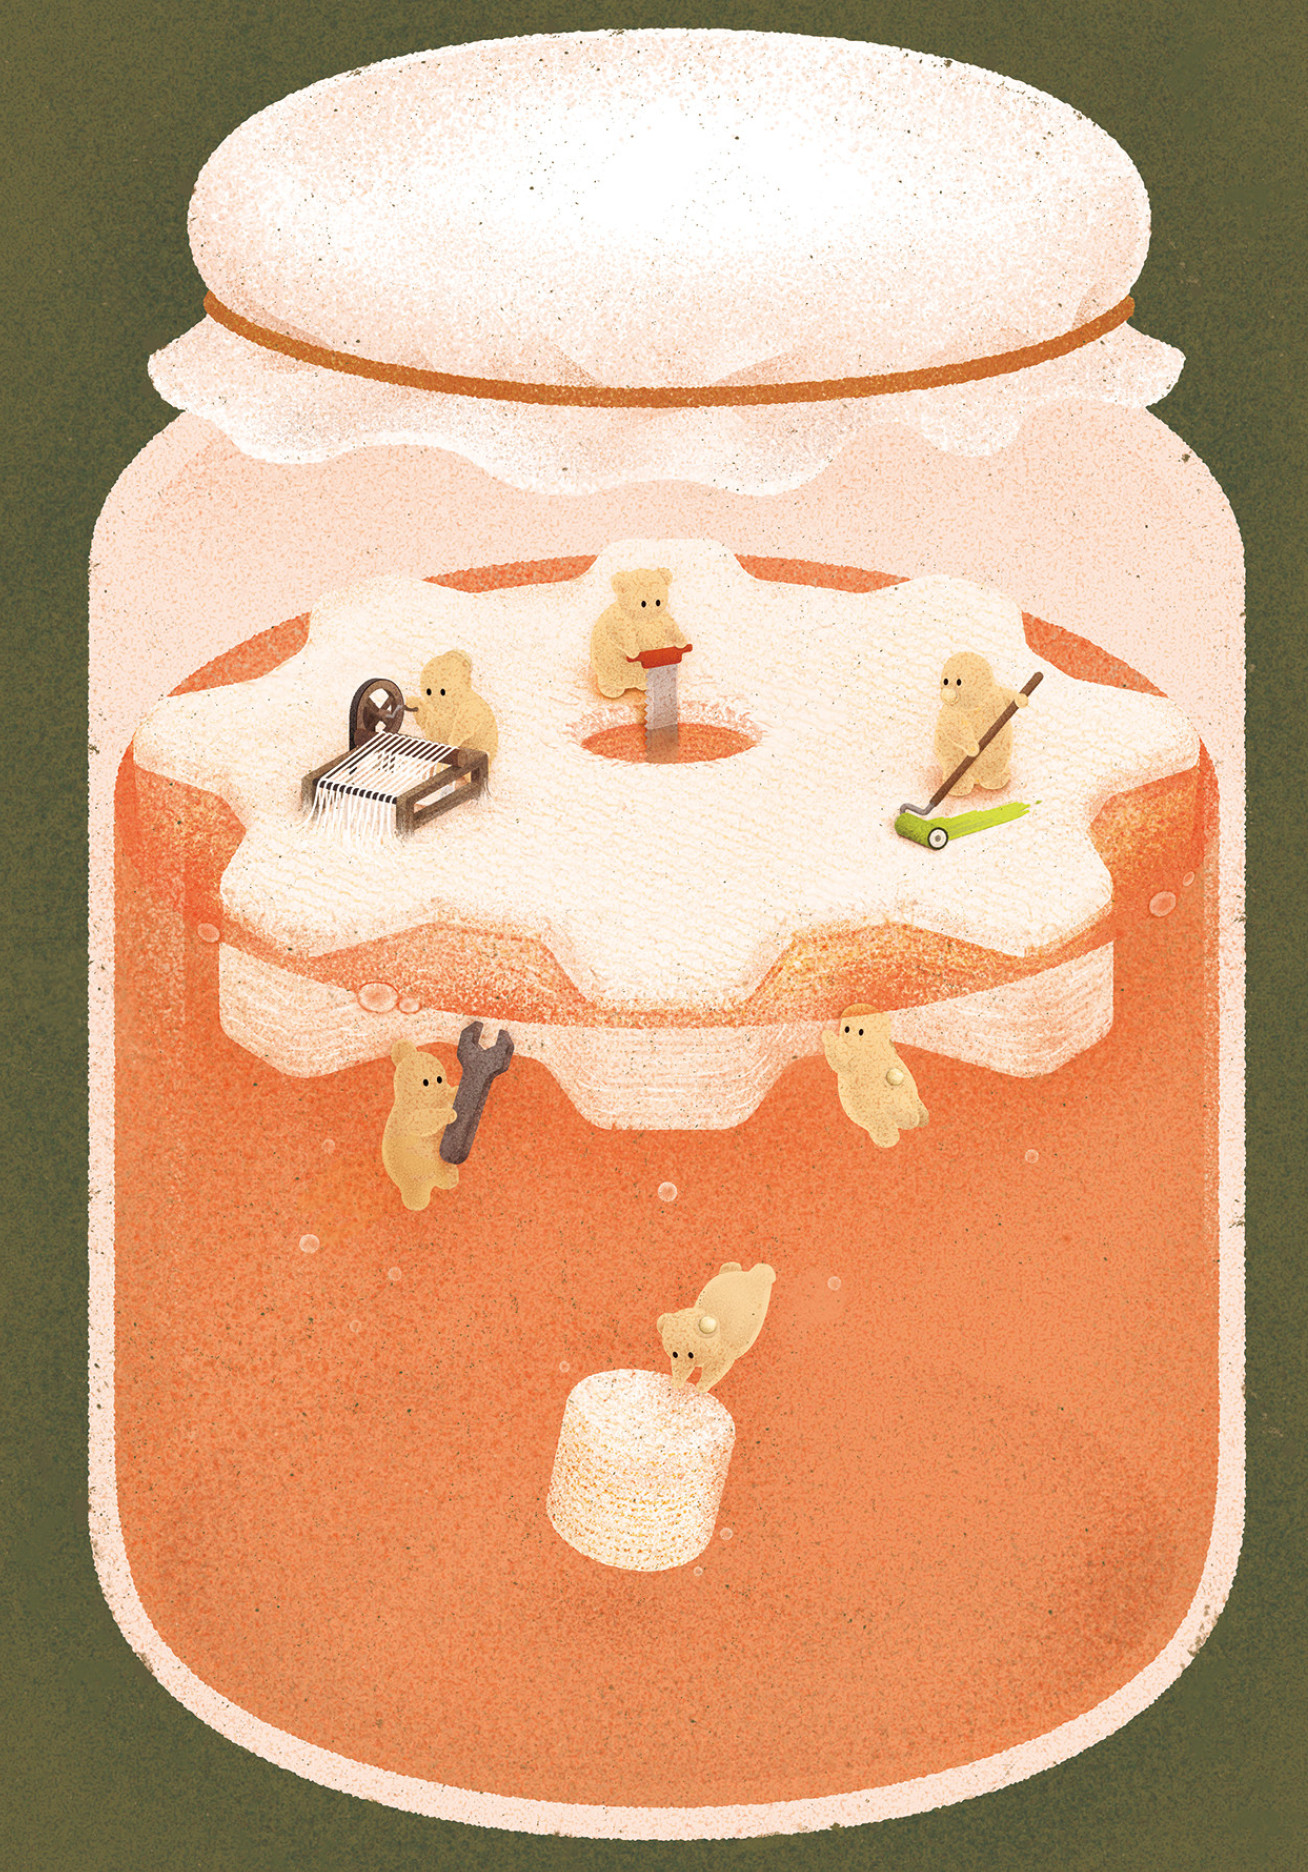 Drawing of a jar with orange liquid. The ELMs are depicted as tiny animals doing odd jobs like spinning fabric and wielding a spanner